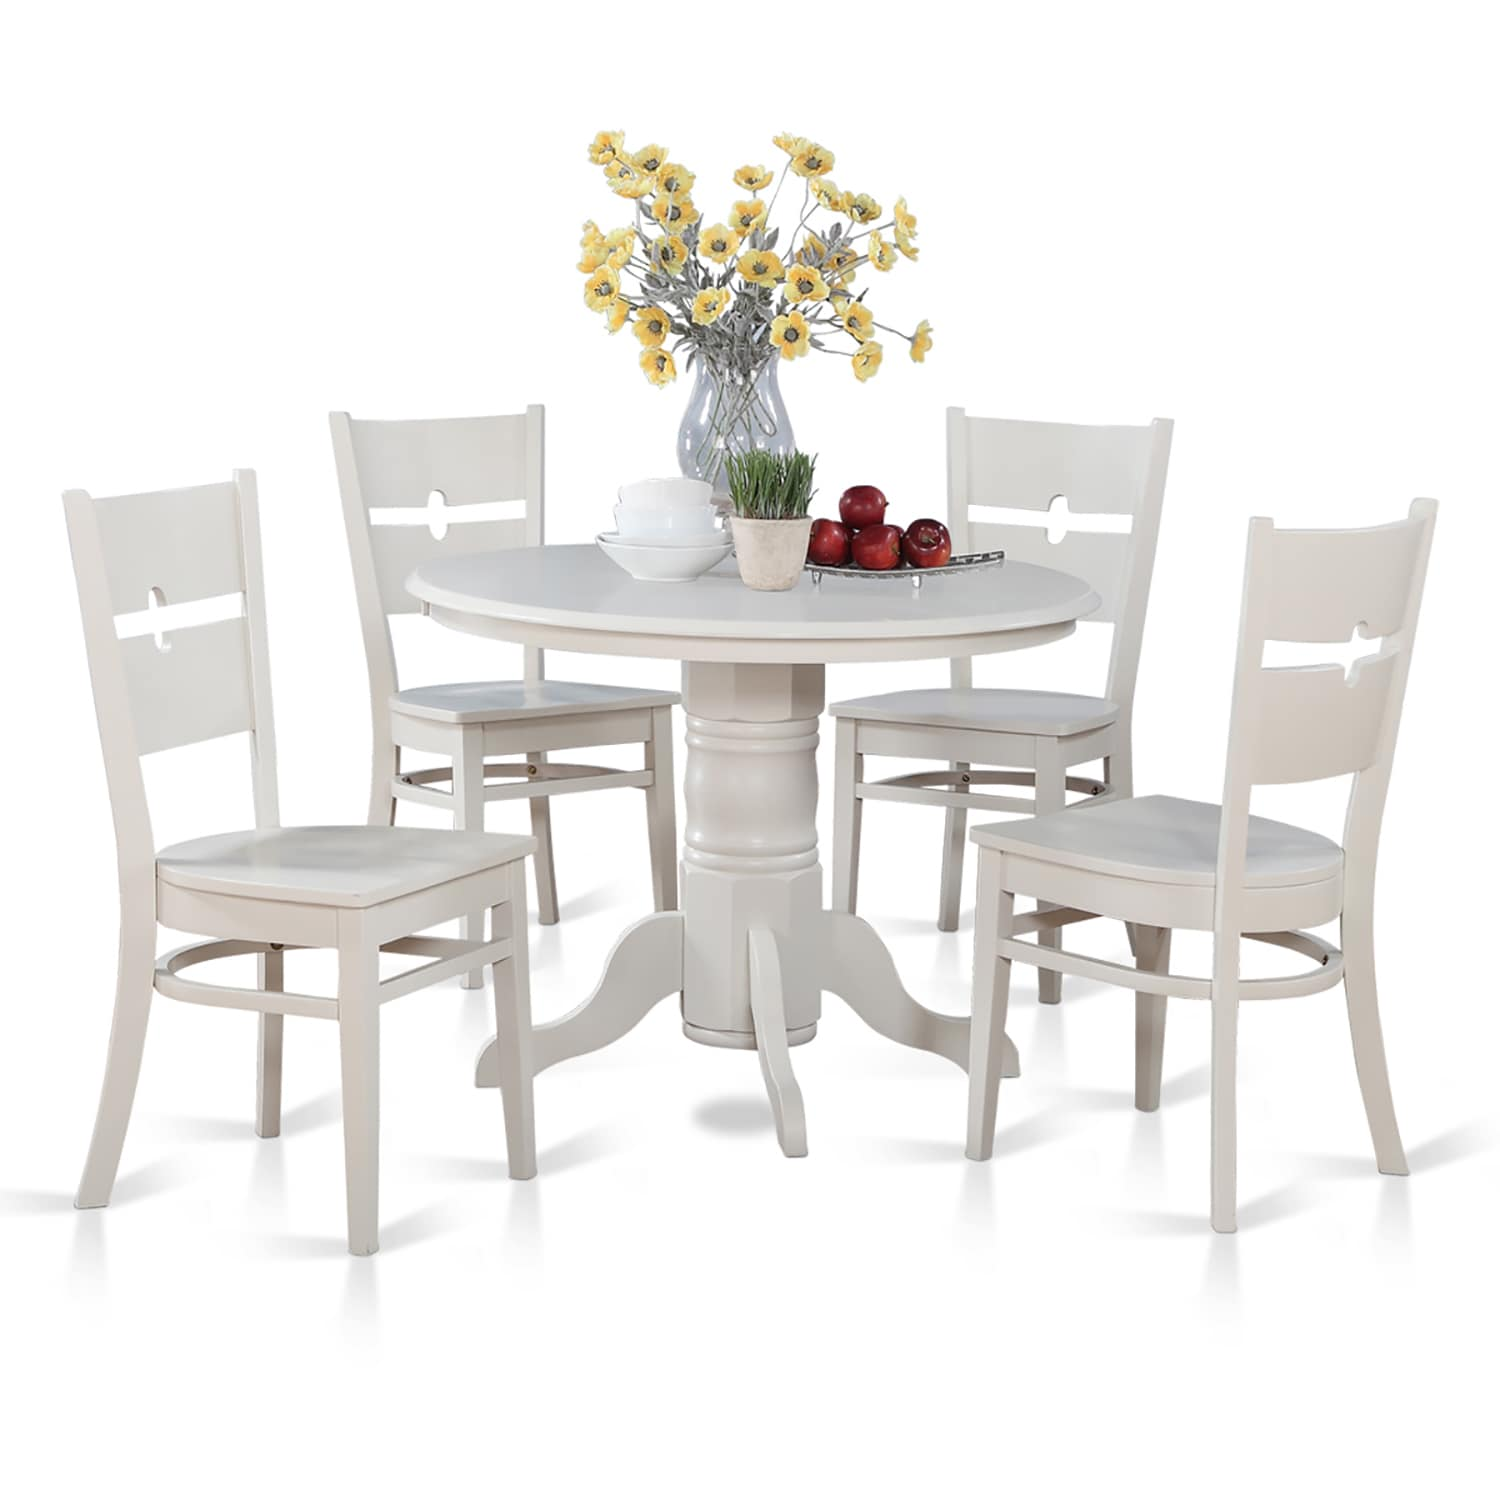 5 Piece Kitchen Nook Round Table With 4 Dinette Chairs   Free Shipping  Today   Overstock   17410296